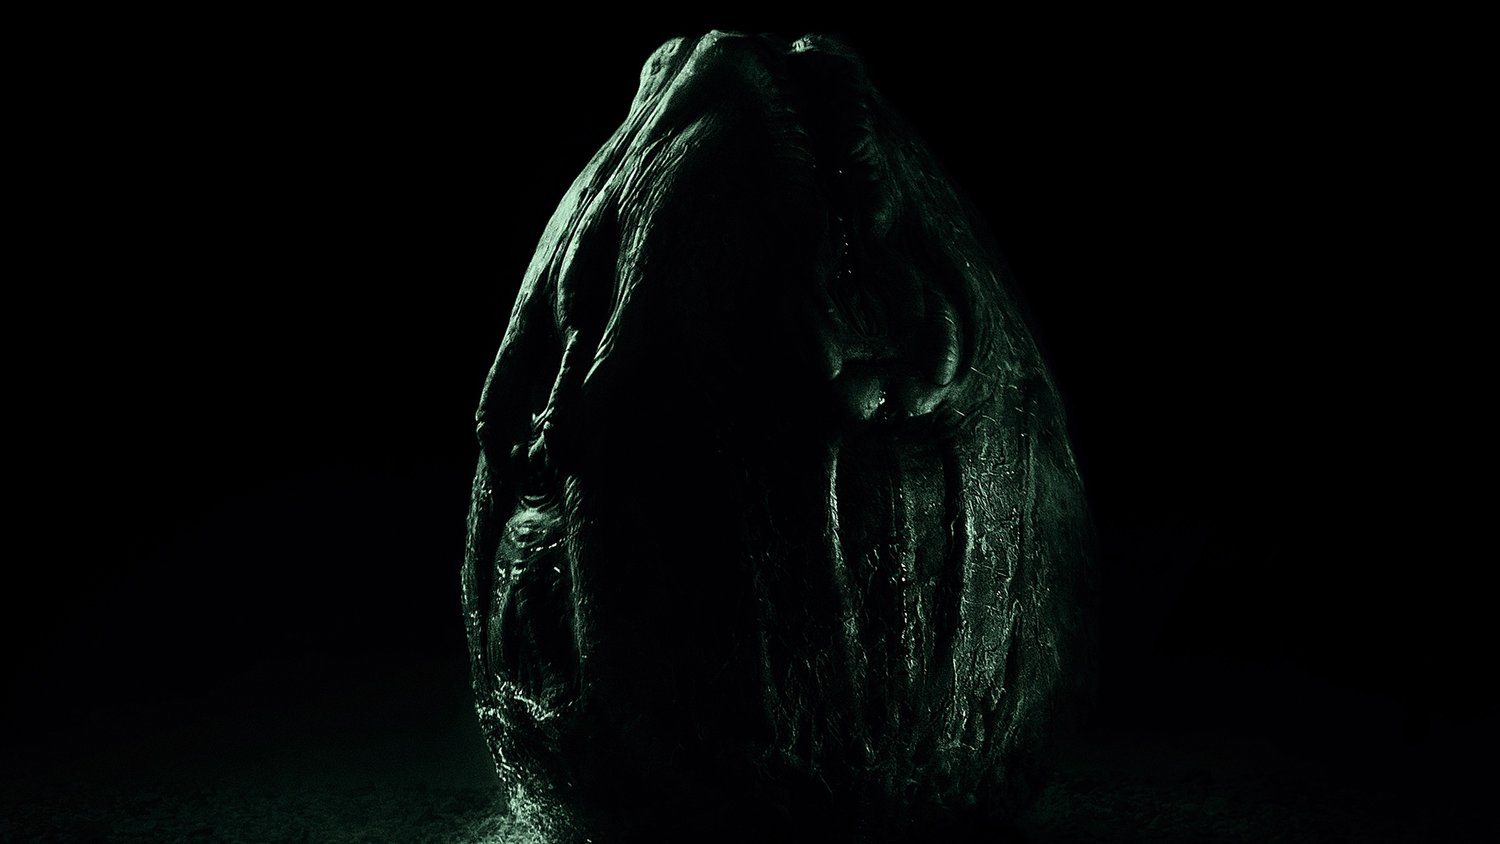 ALIEN: COVENANT Poster Encourages You to Hide, and a New Trailer Drops Tomorrow